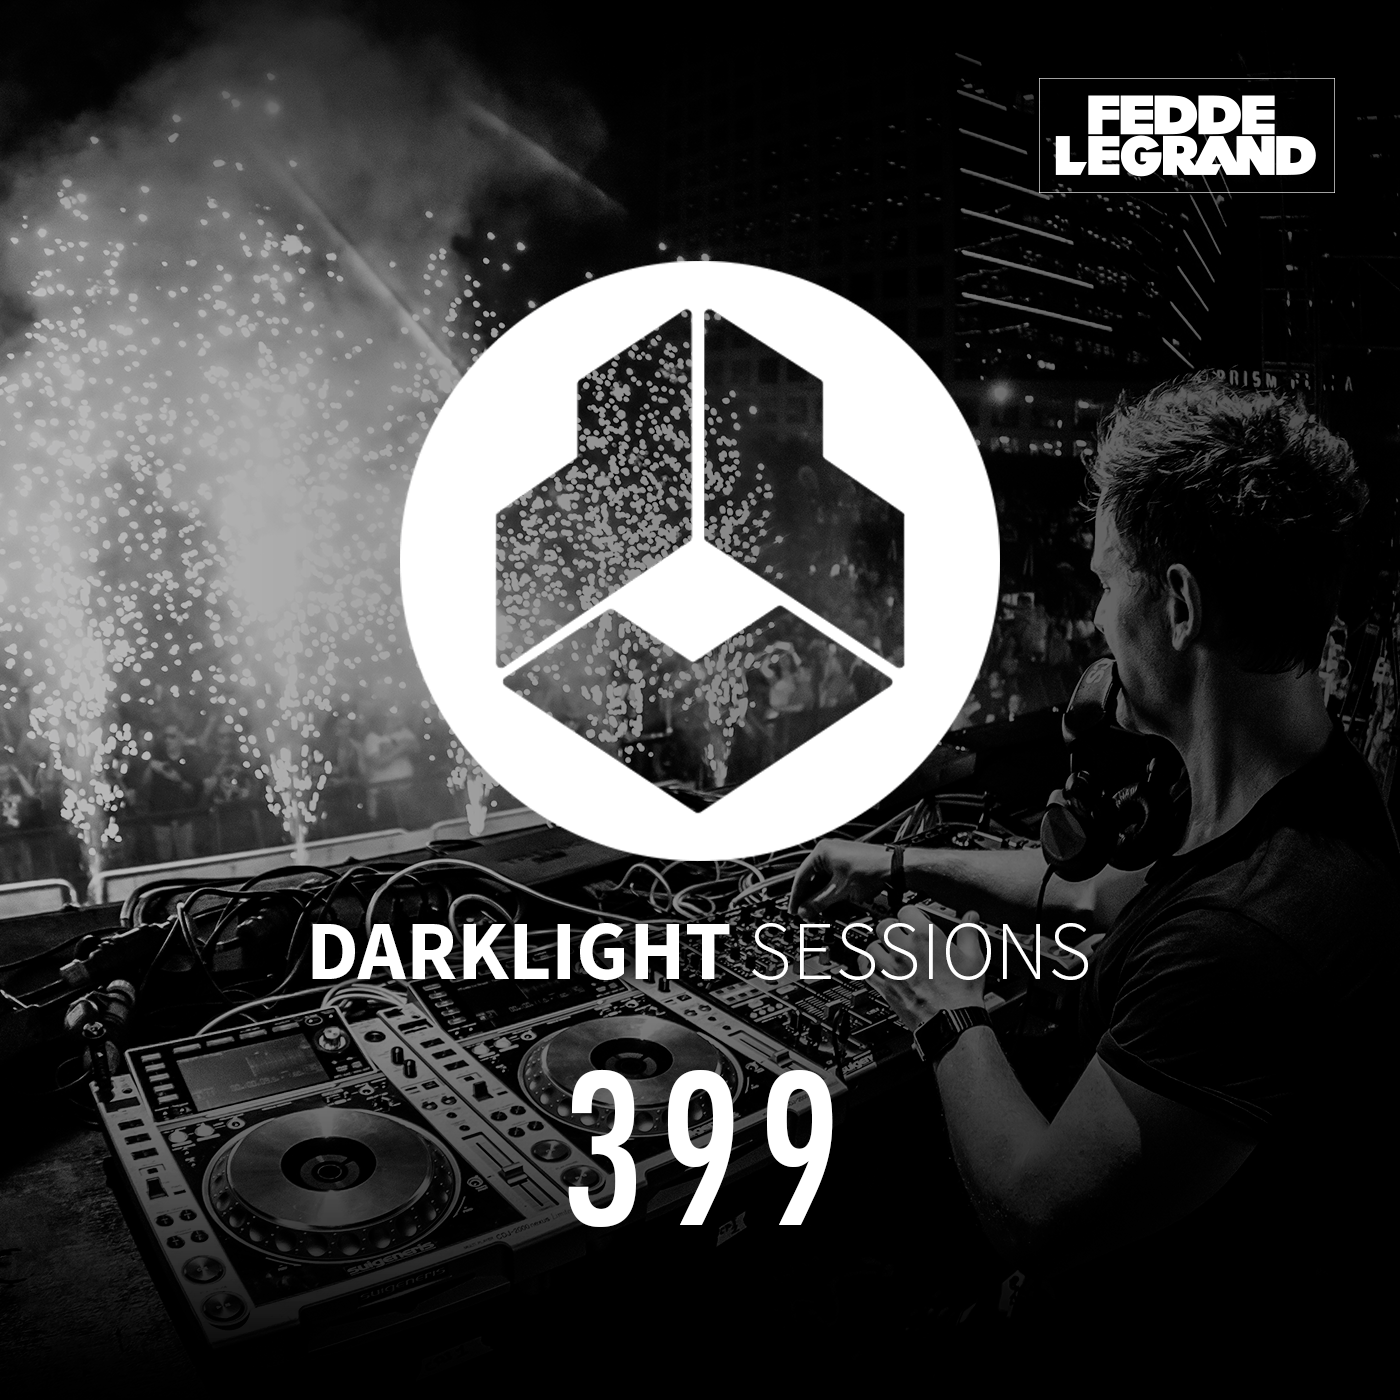 Darklight Sessions 399